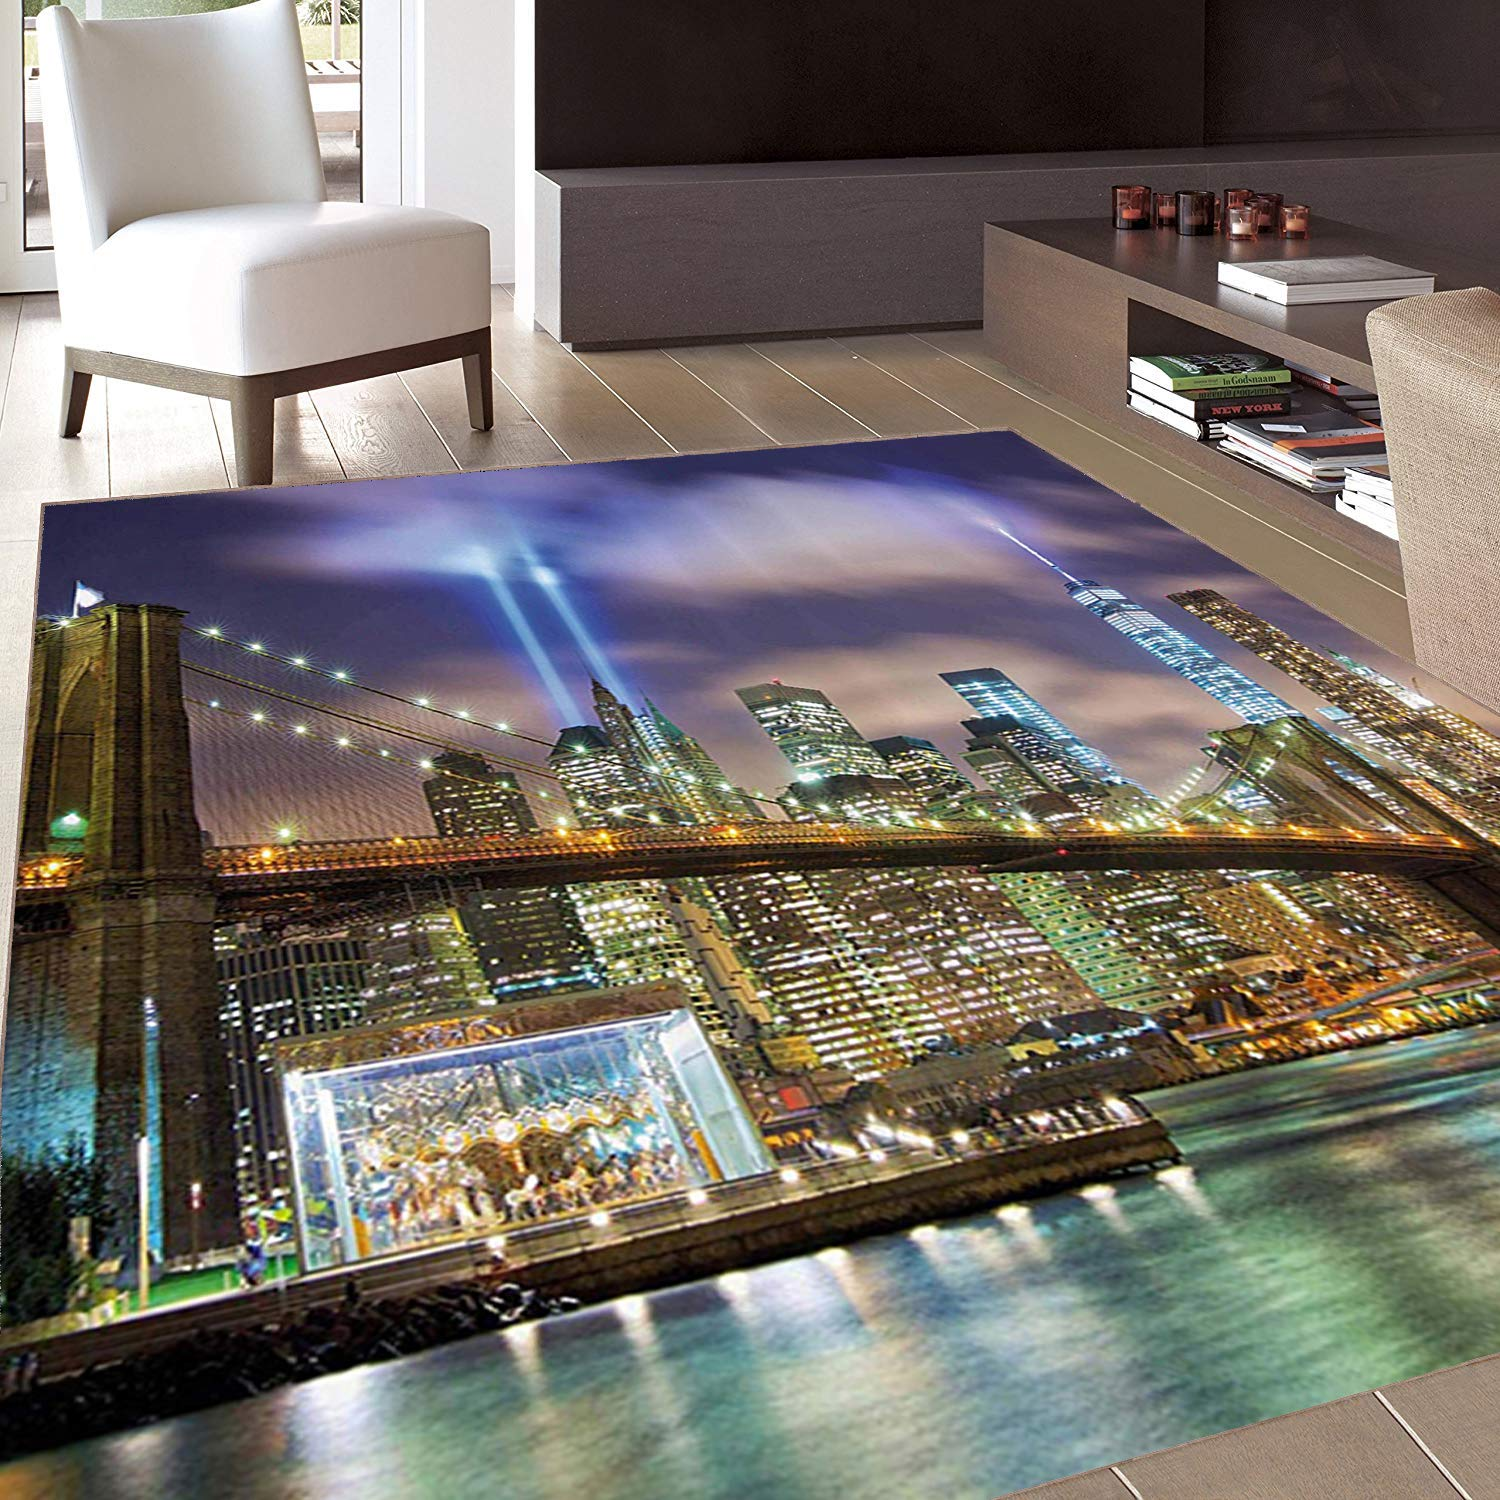 Rug,FloorMatRug,Apartment Set,AreaRug,Manhattan Skyline with Brooklyn Bridge and The Towers of Lights in New York City,Home mat,4